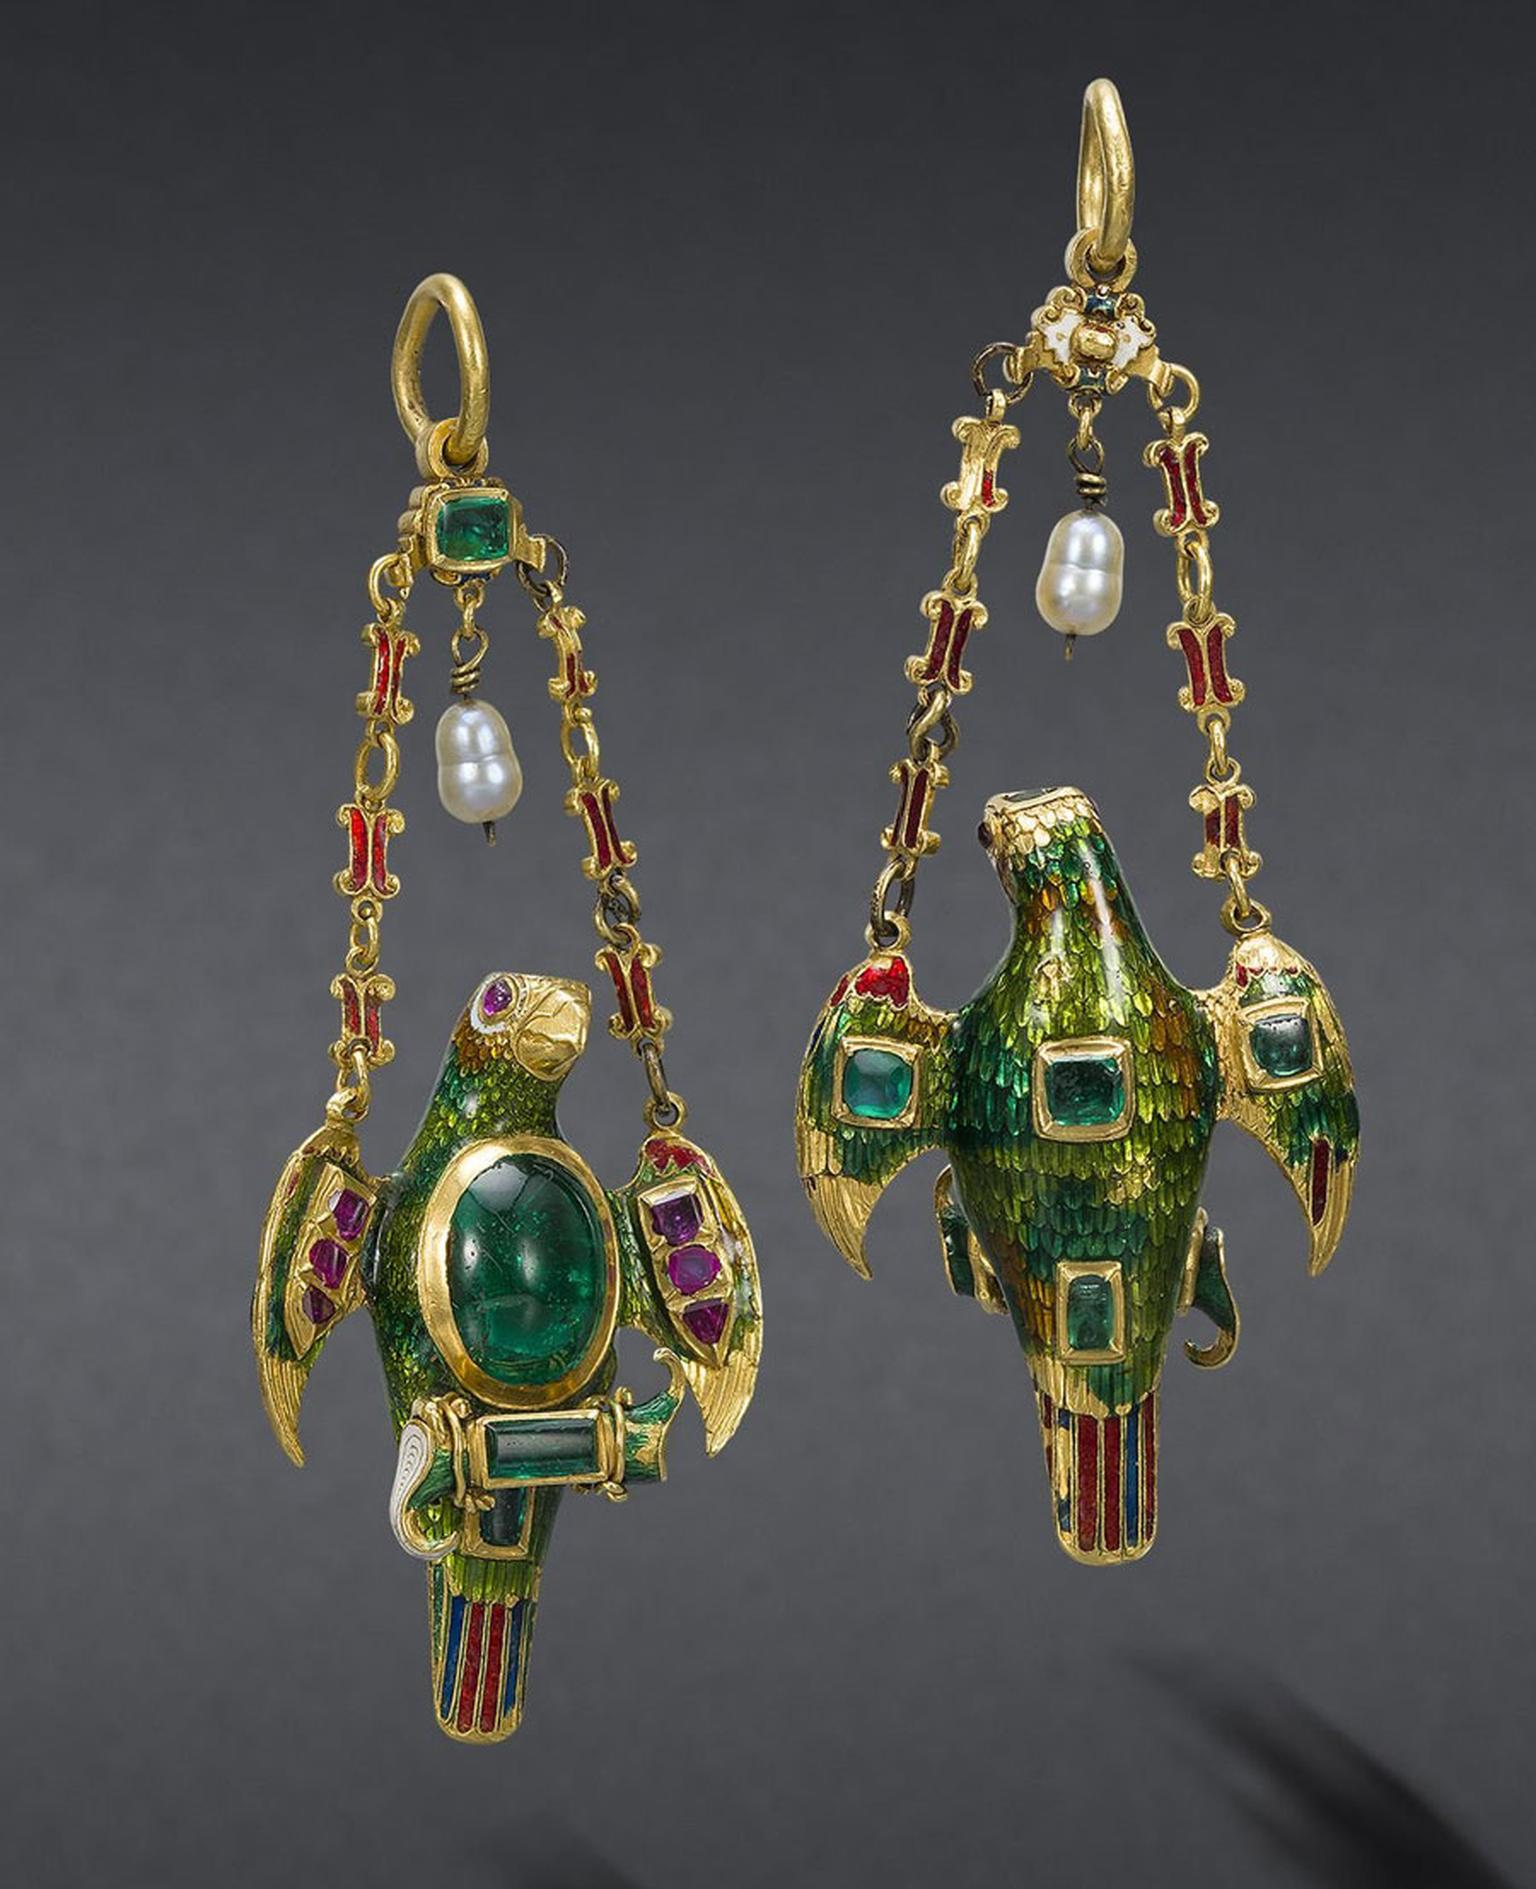 Bonhams-A-Spanish-Colonial-gold-enamel-and-gem-set-pendant.jpg